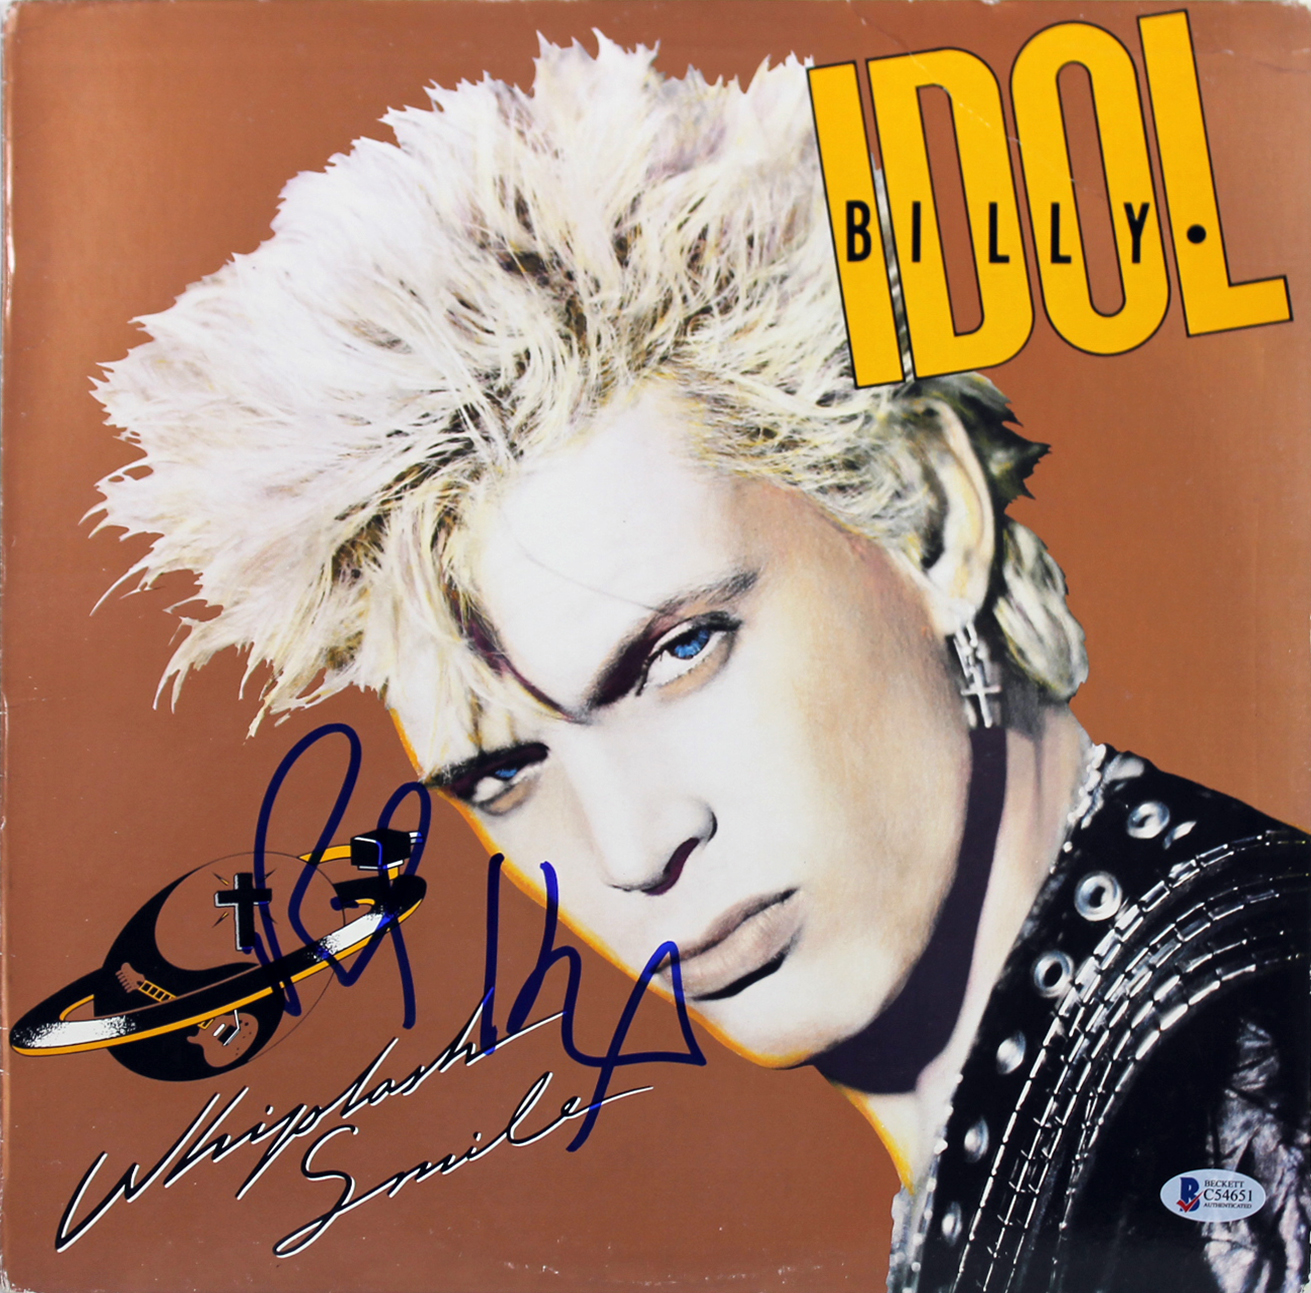 Details about Billy Idol Signed Whiplash Smile Album Cover W/ Vinyl  Autographed BAS #C54651